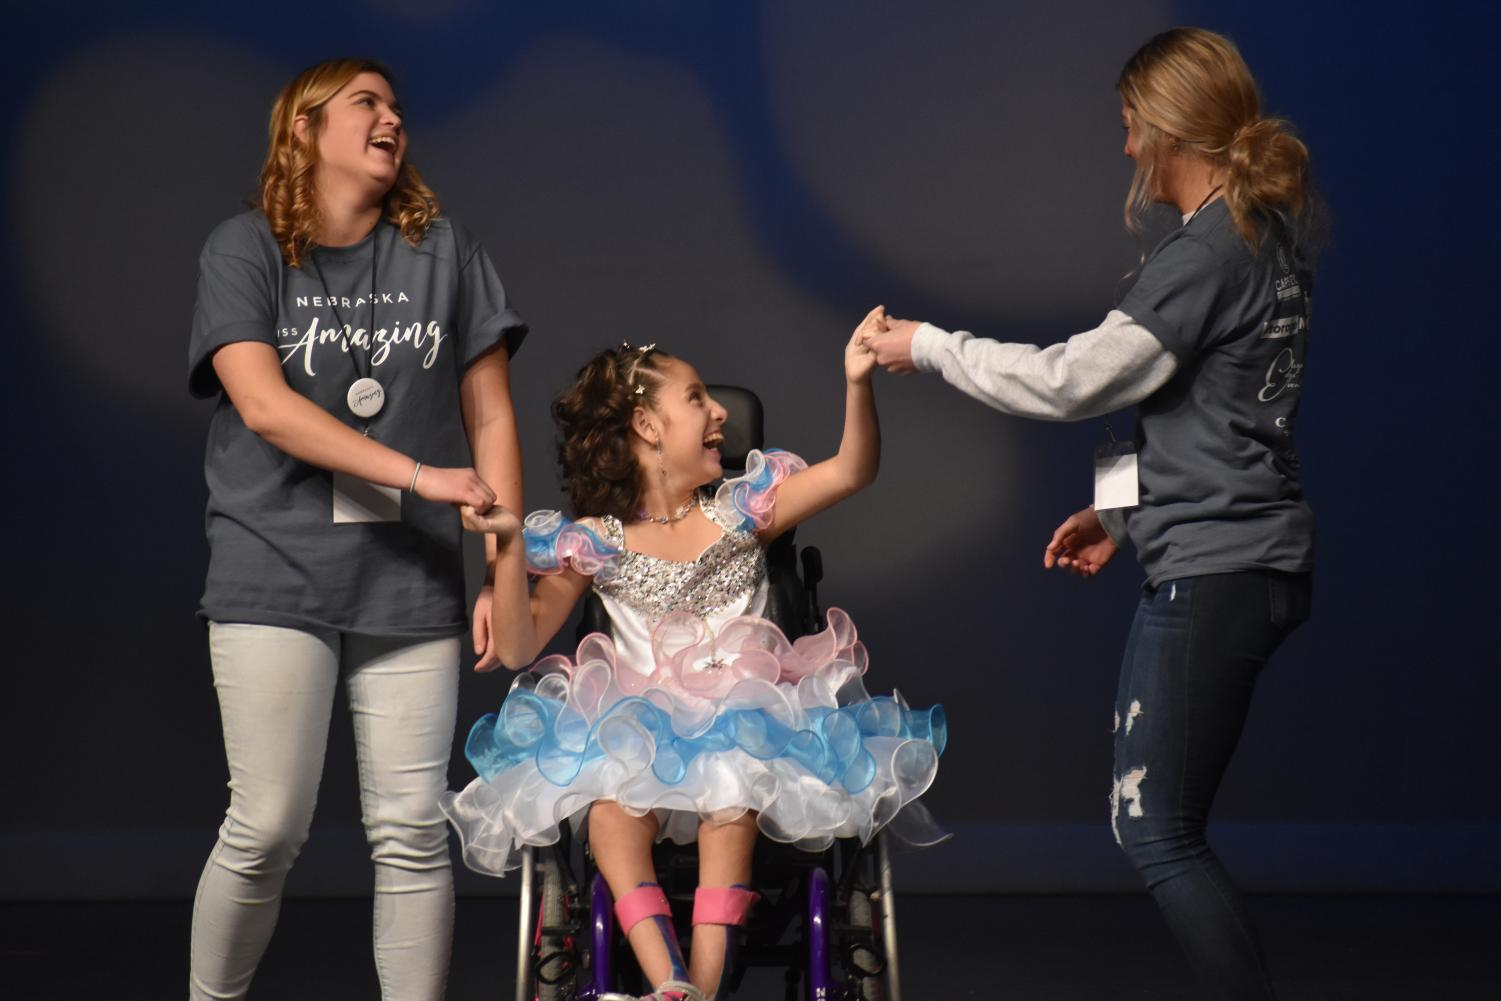 The Miss Amazing Pageant brings girls and women of all disabilities together on stage to show their uniqueness and what makes them truly special.